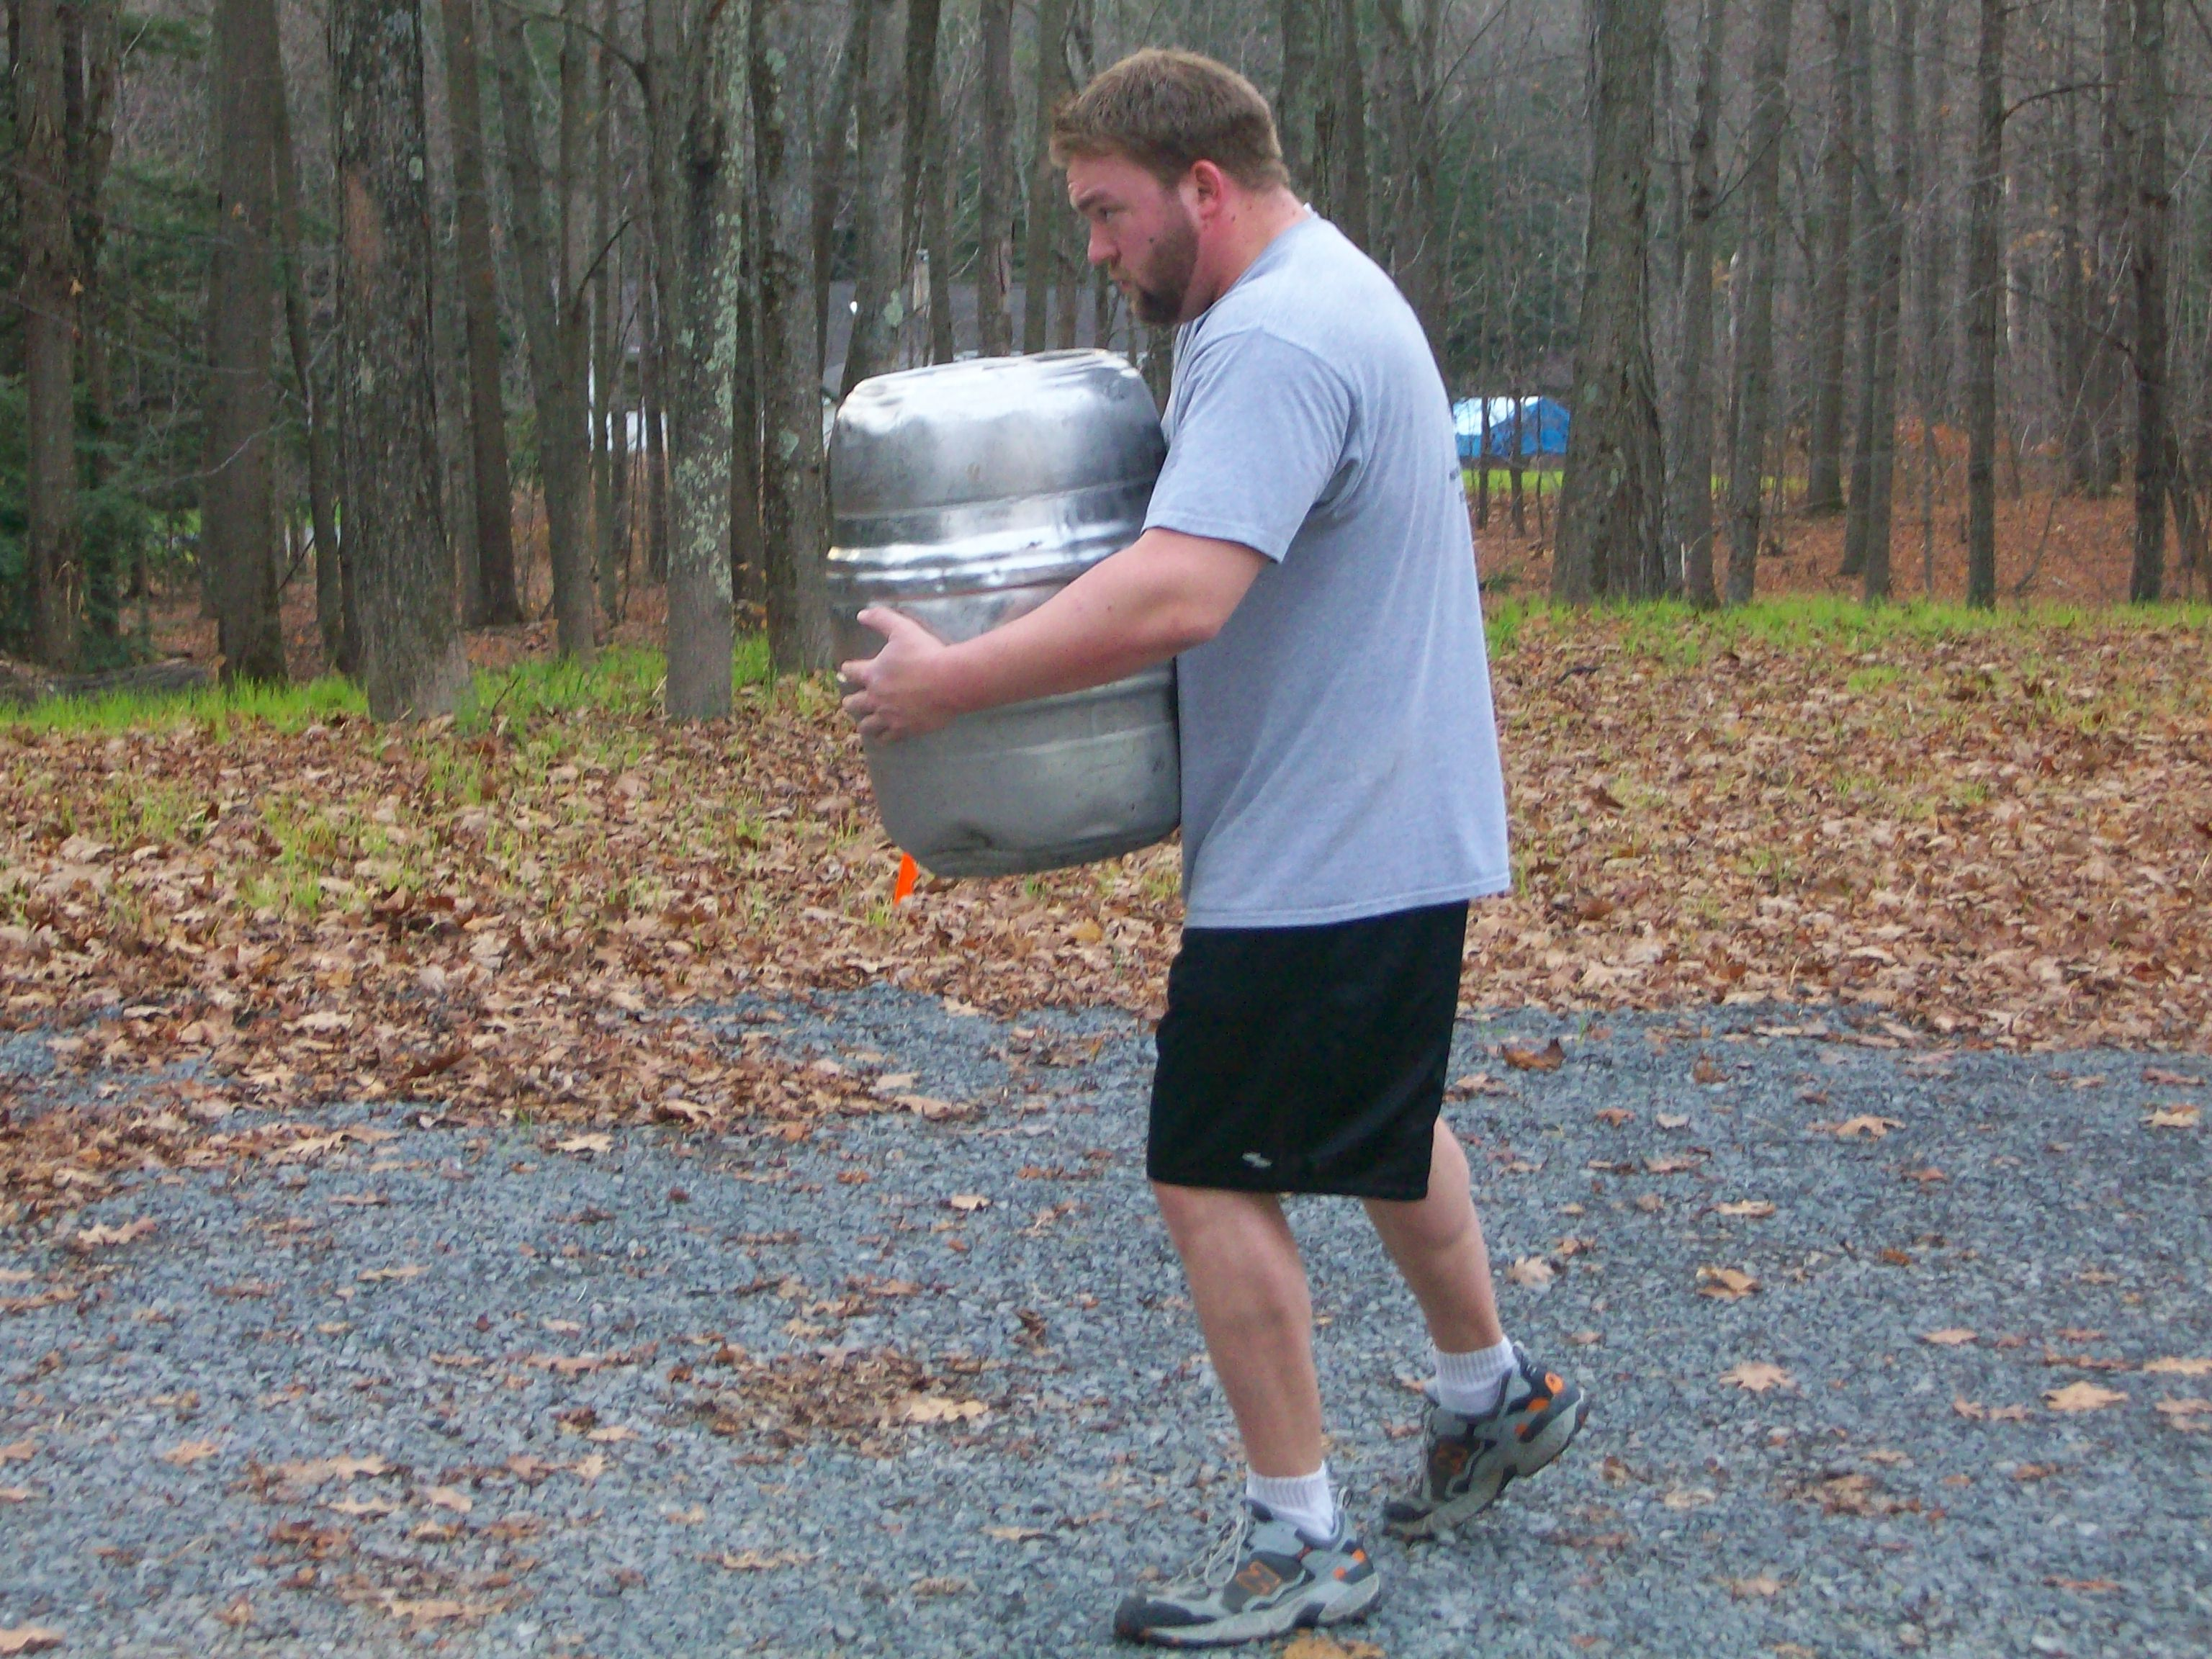 keg carry strongman exercise to do at home